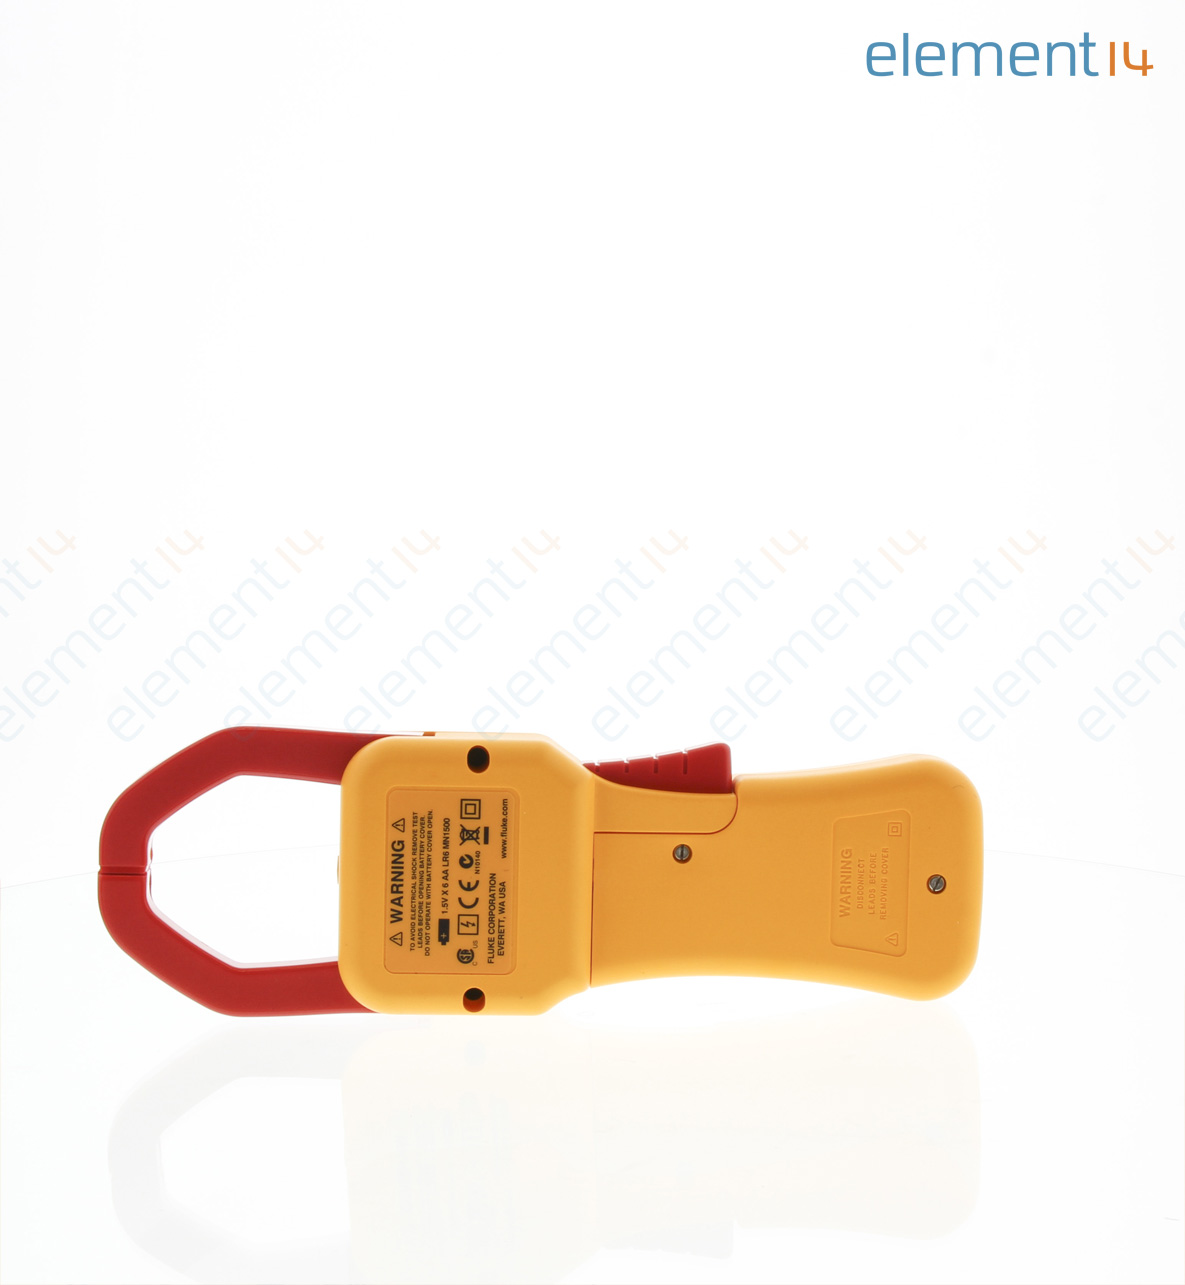 fluke 355 fluke clamp meter current voltage frequency resistance 2 ka 600 v 1 kv 400. Black Bedroom Furniture Sets. Home Design Ideas